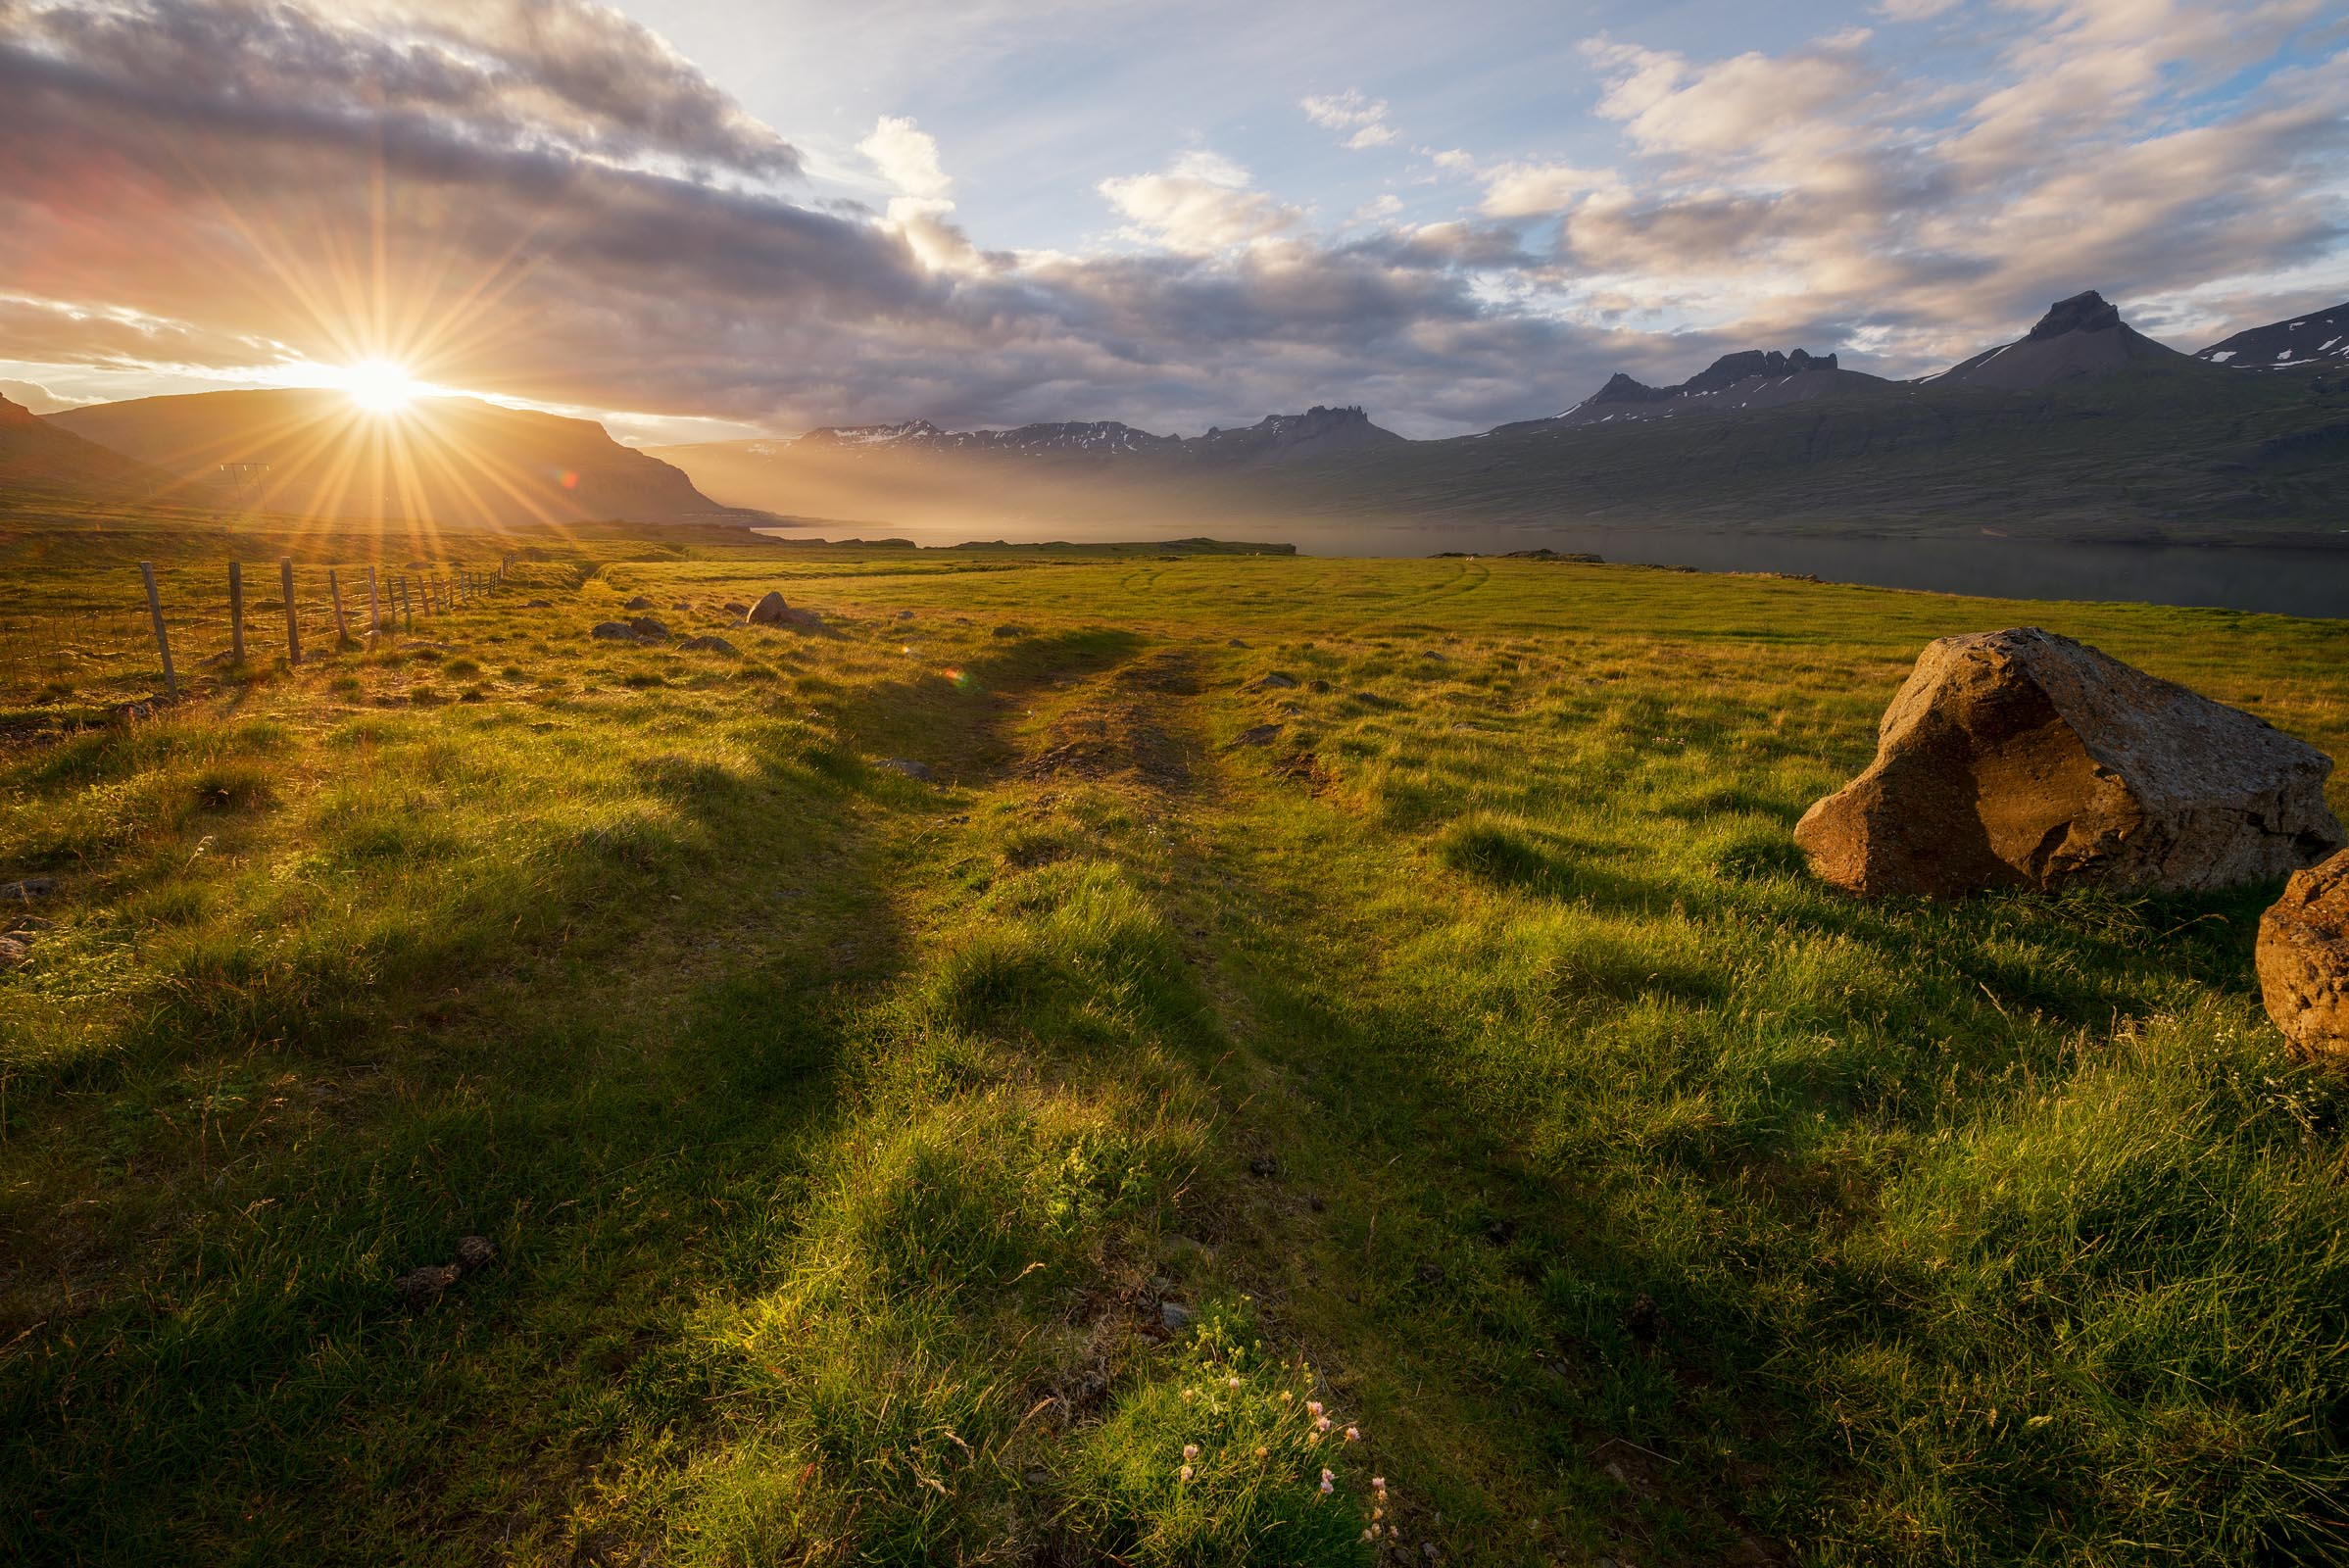 Photograph of Sunburst Meadow in Djupivogur, Iceland by Brent Goldman Photography